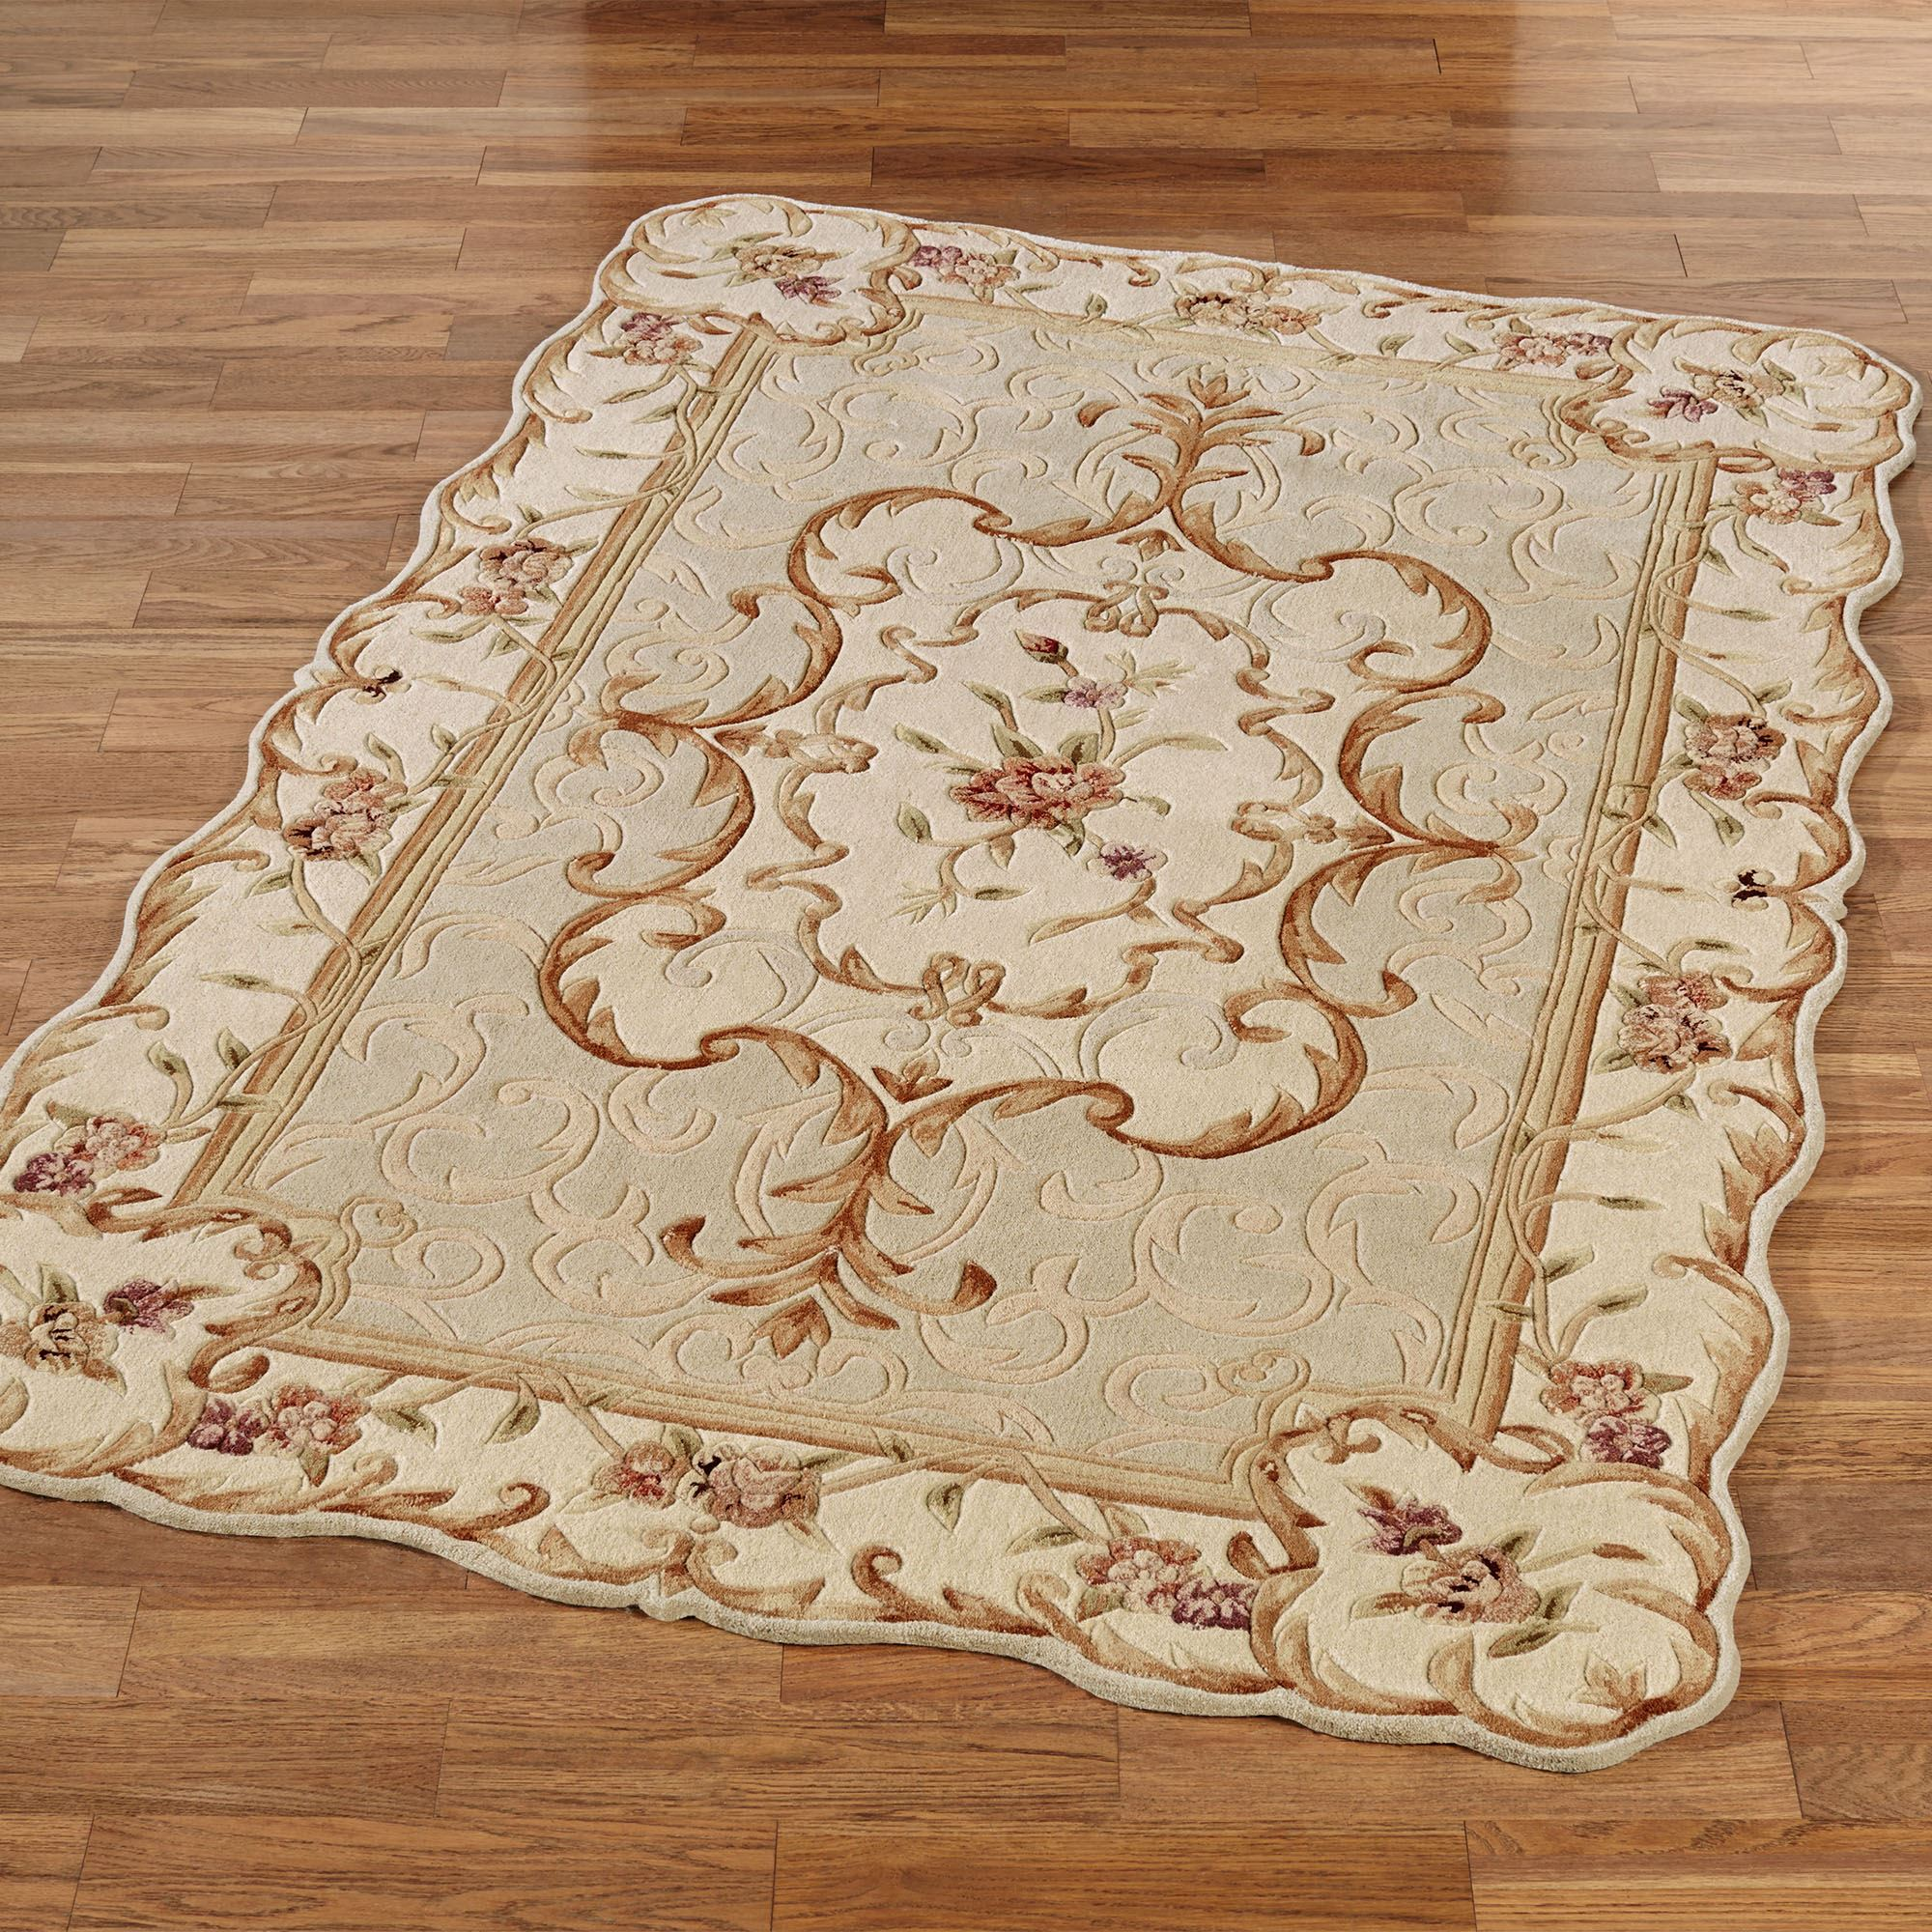 french area handmade bedroom rugs home room product hallway quot antique carpet aubusson square wool decor weave flat living rug pastel neutral wa